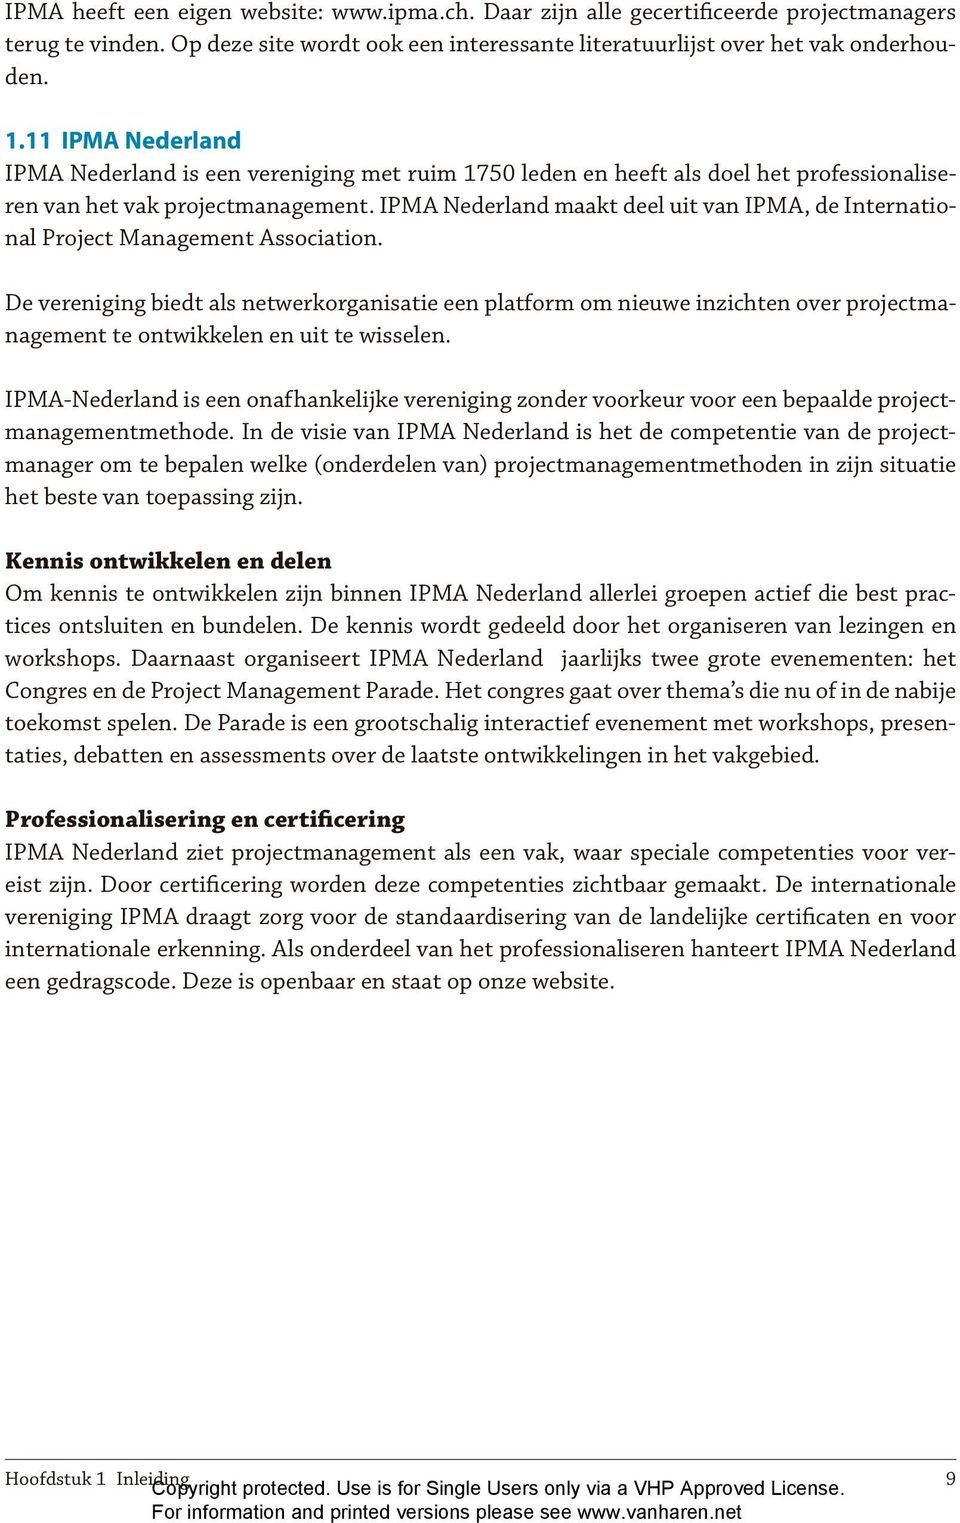 IPMA Nederland maakt deel uit van IPMA, de International Project Management Association.